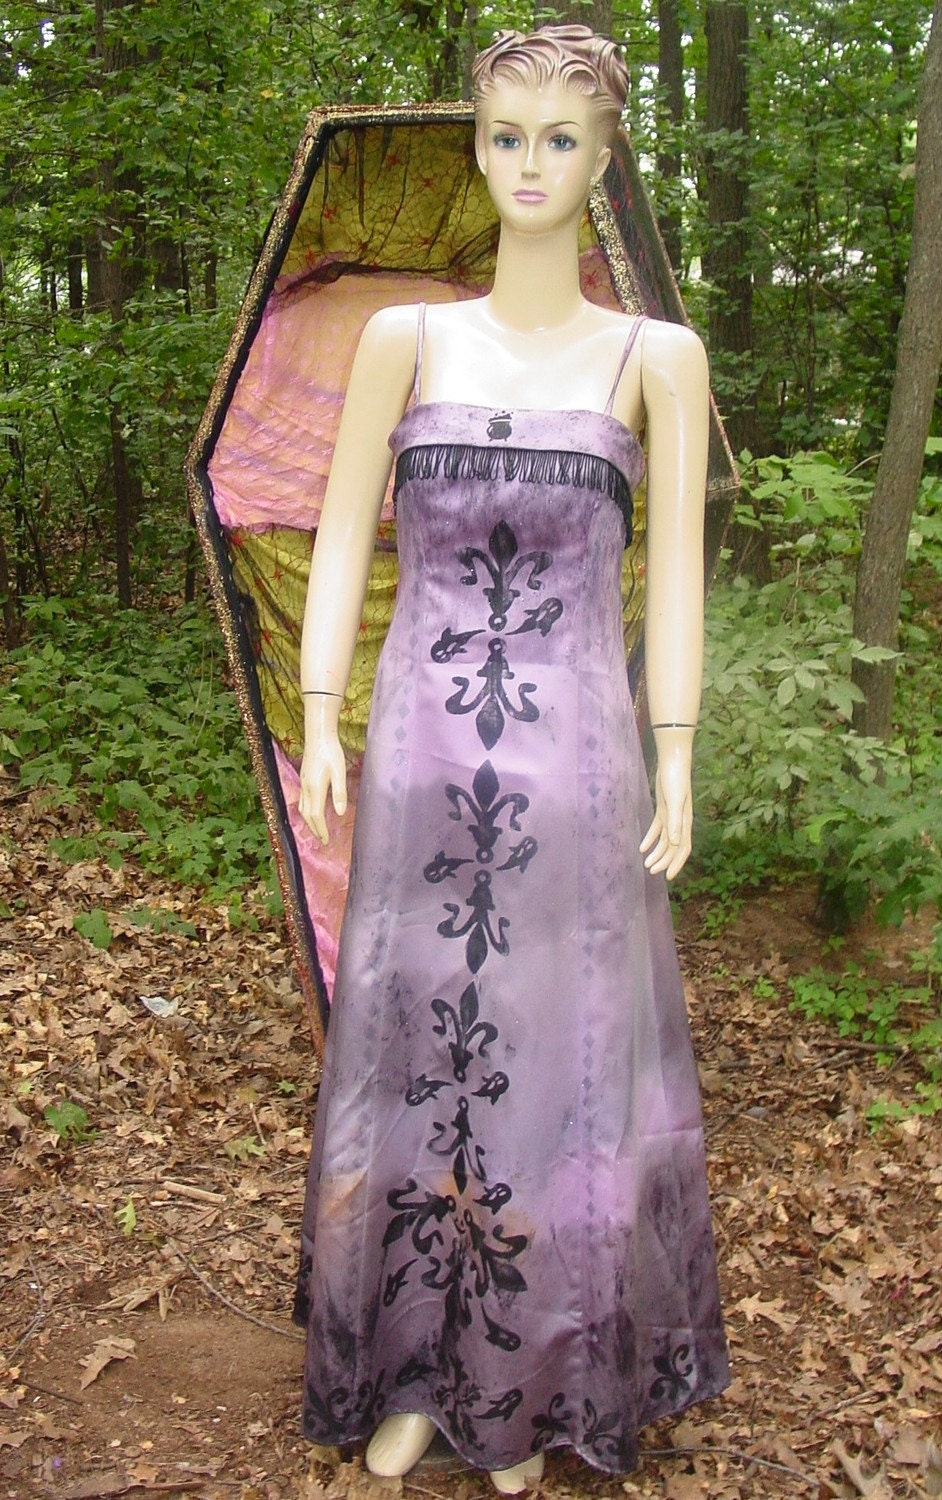 handmade VAMPIRE GOWN with ghosts,spiders and caldron HALLOWEEN COSTUME or zombie prom